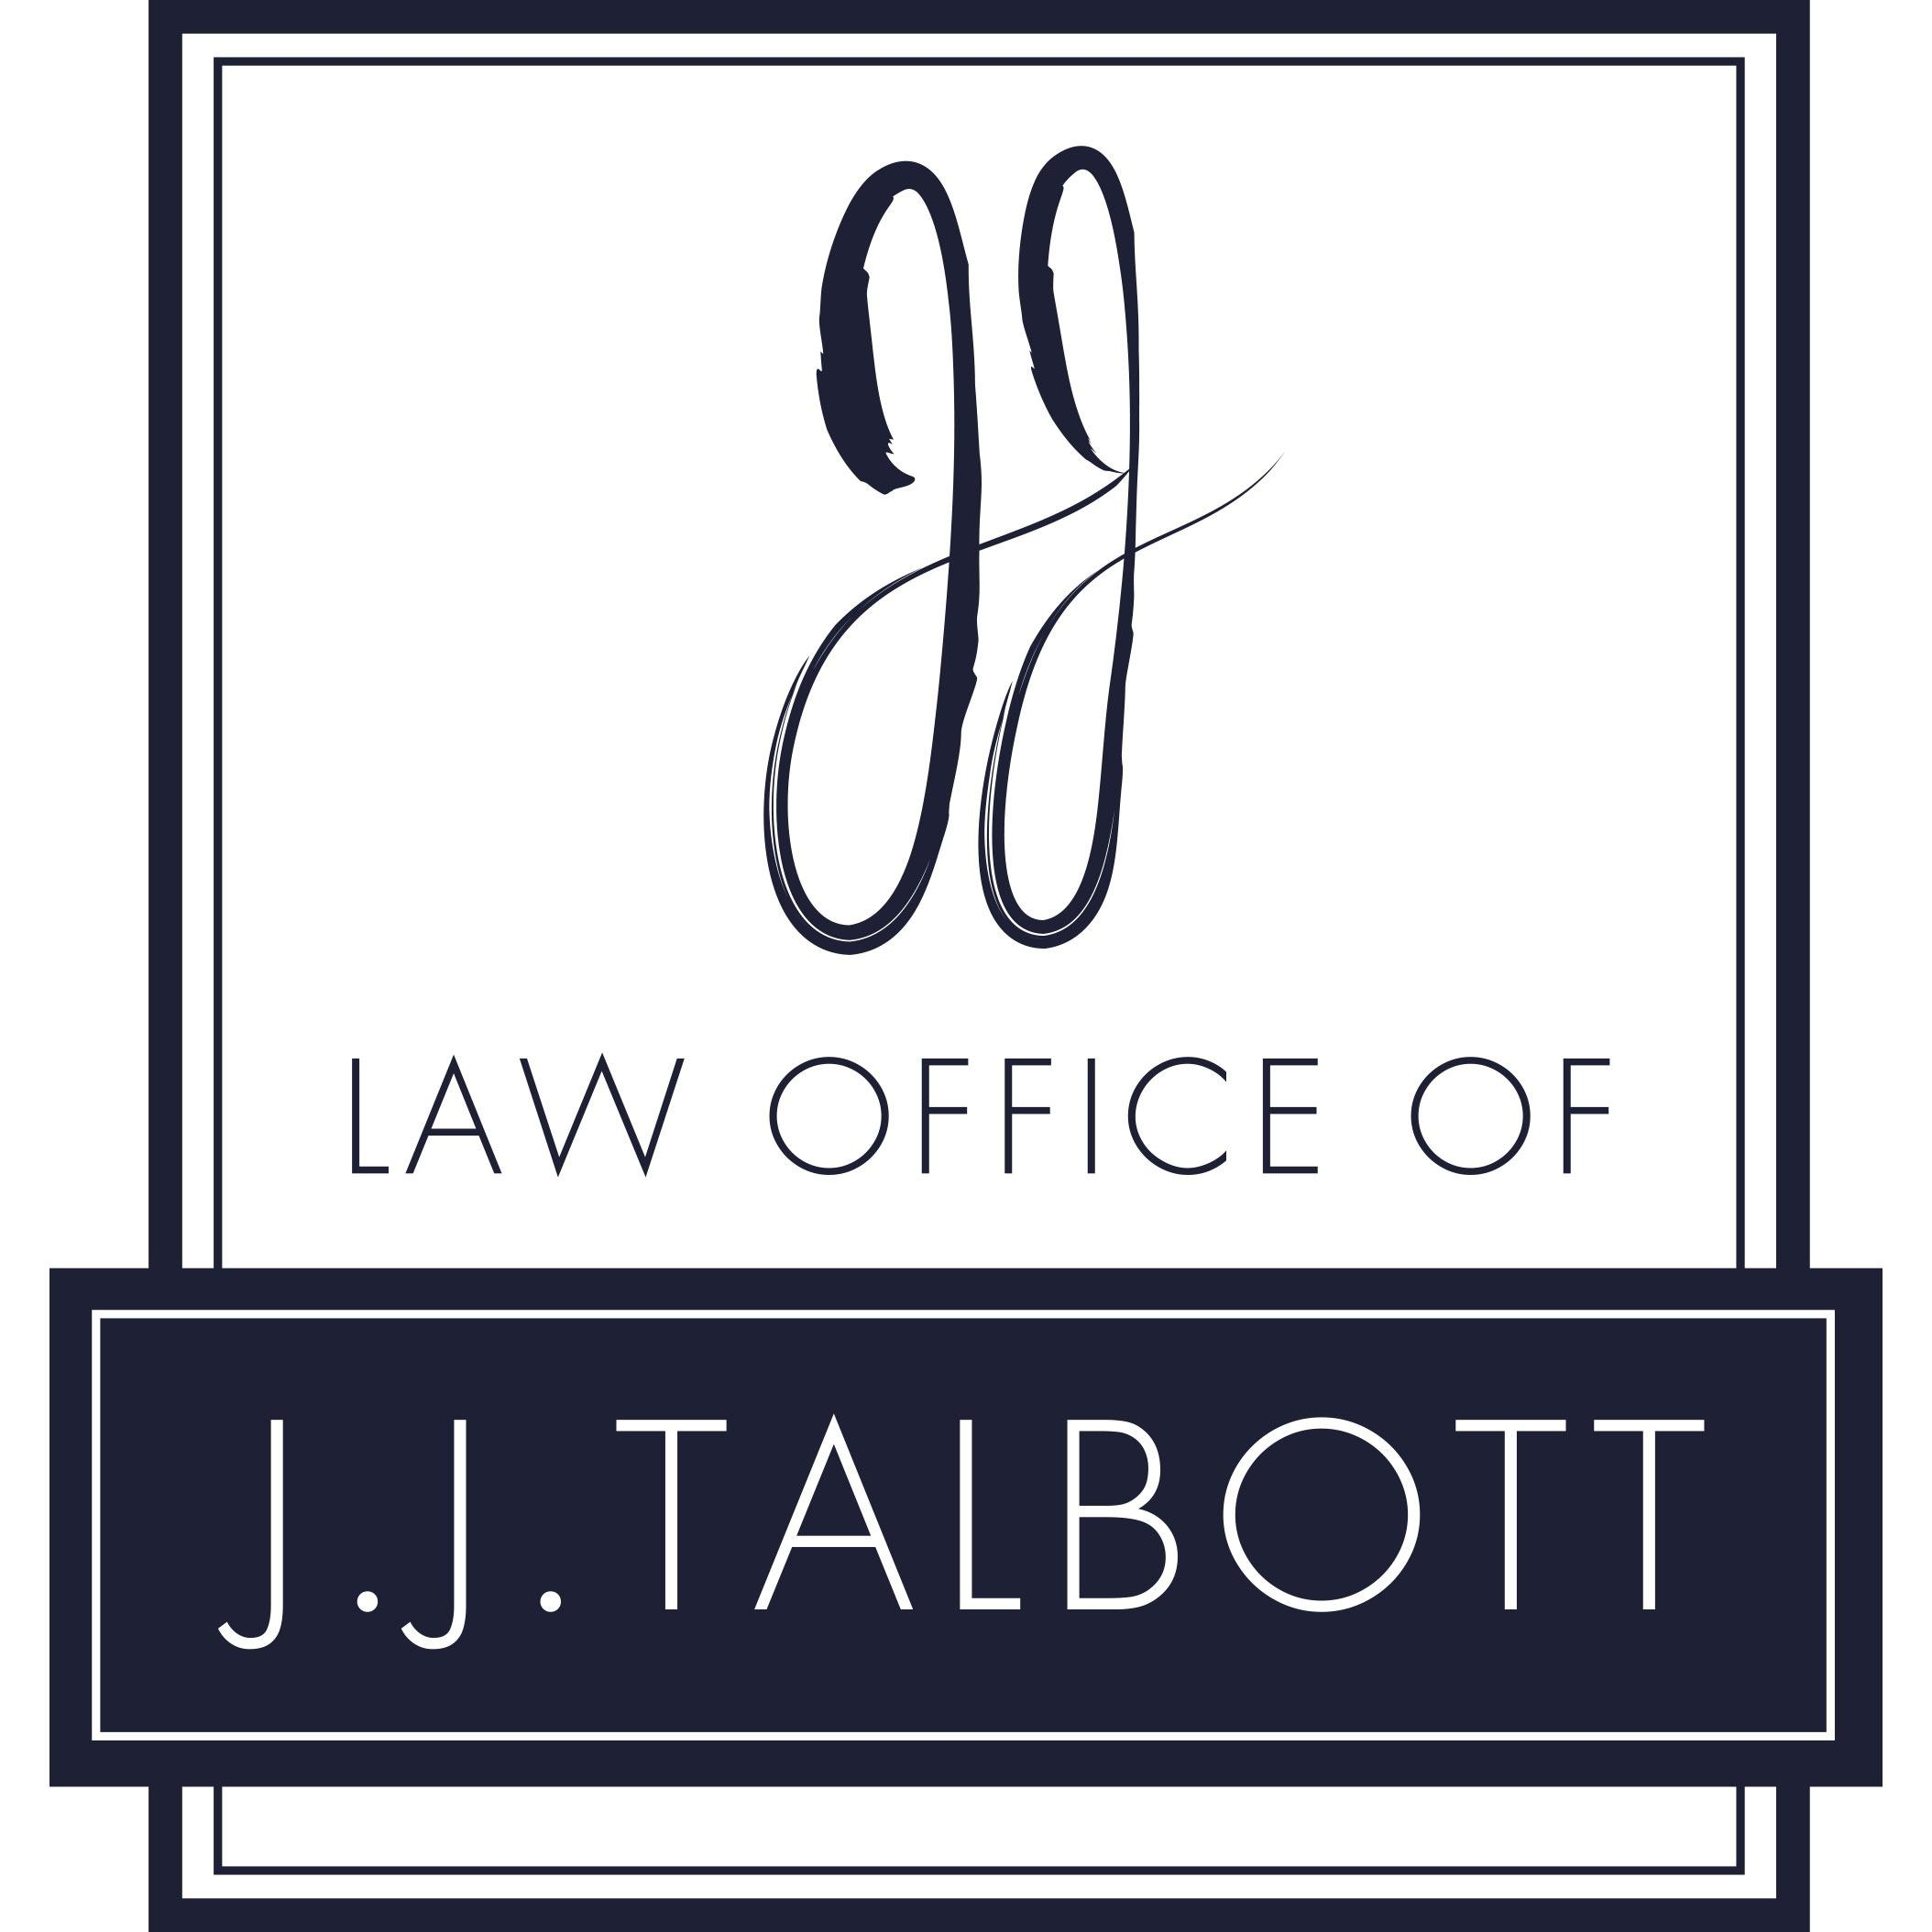 Law Office of J.J. Talbott